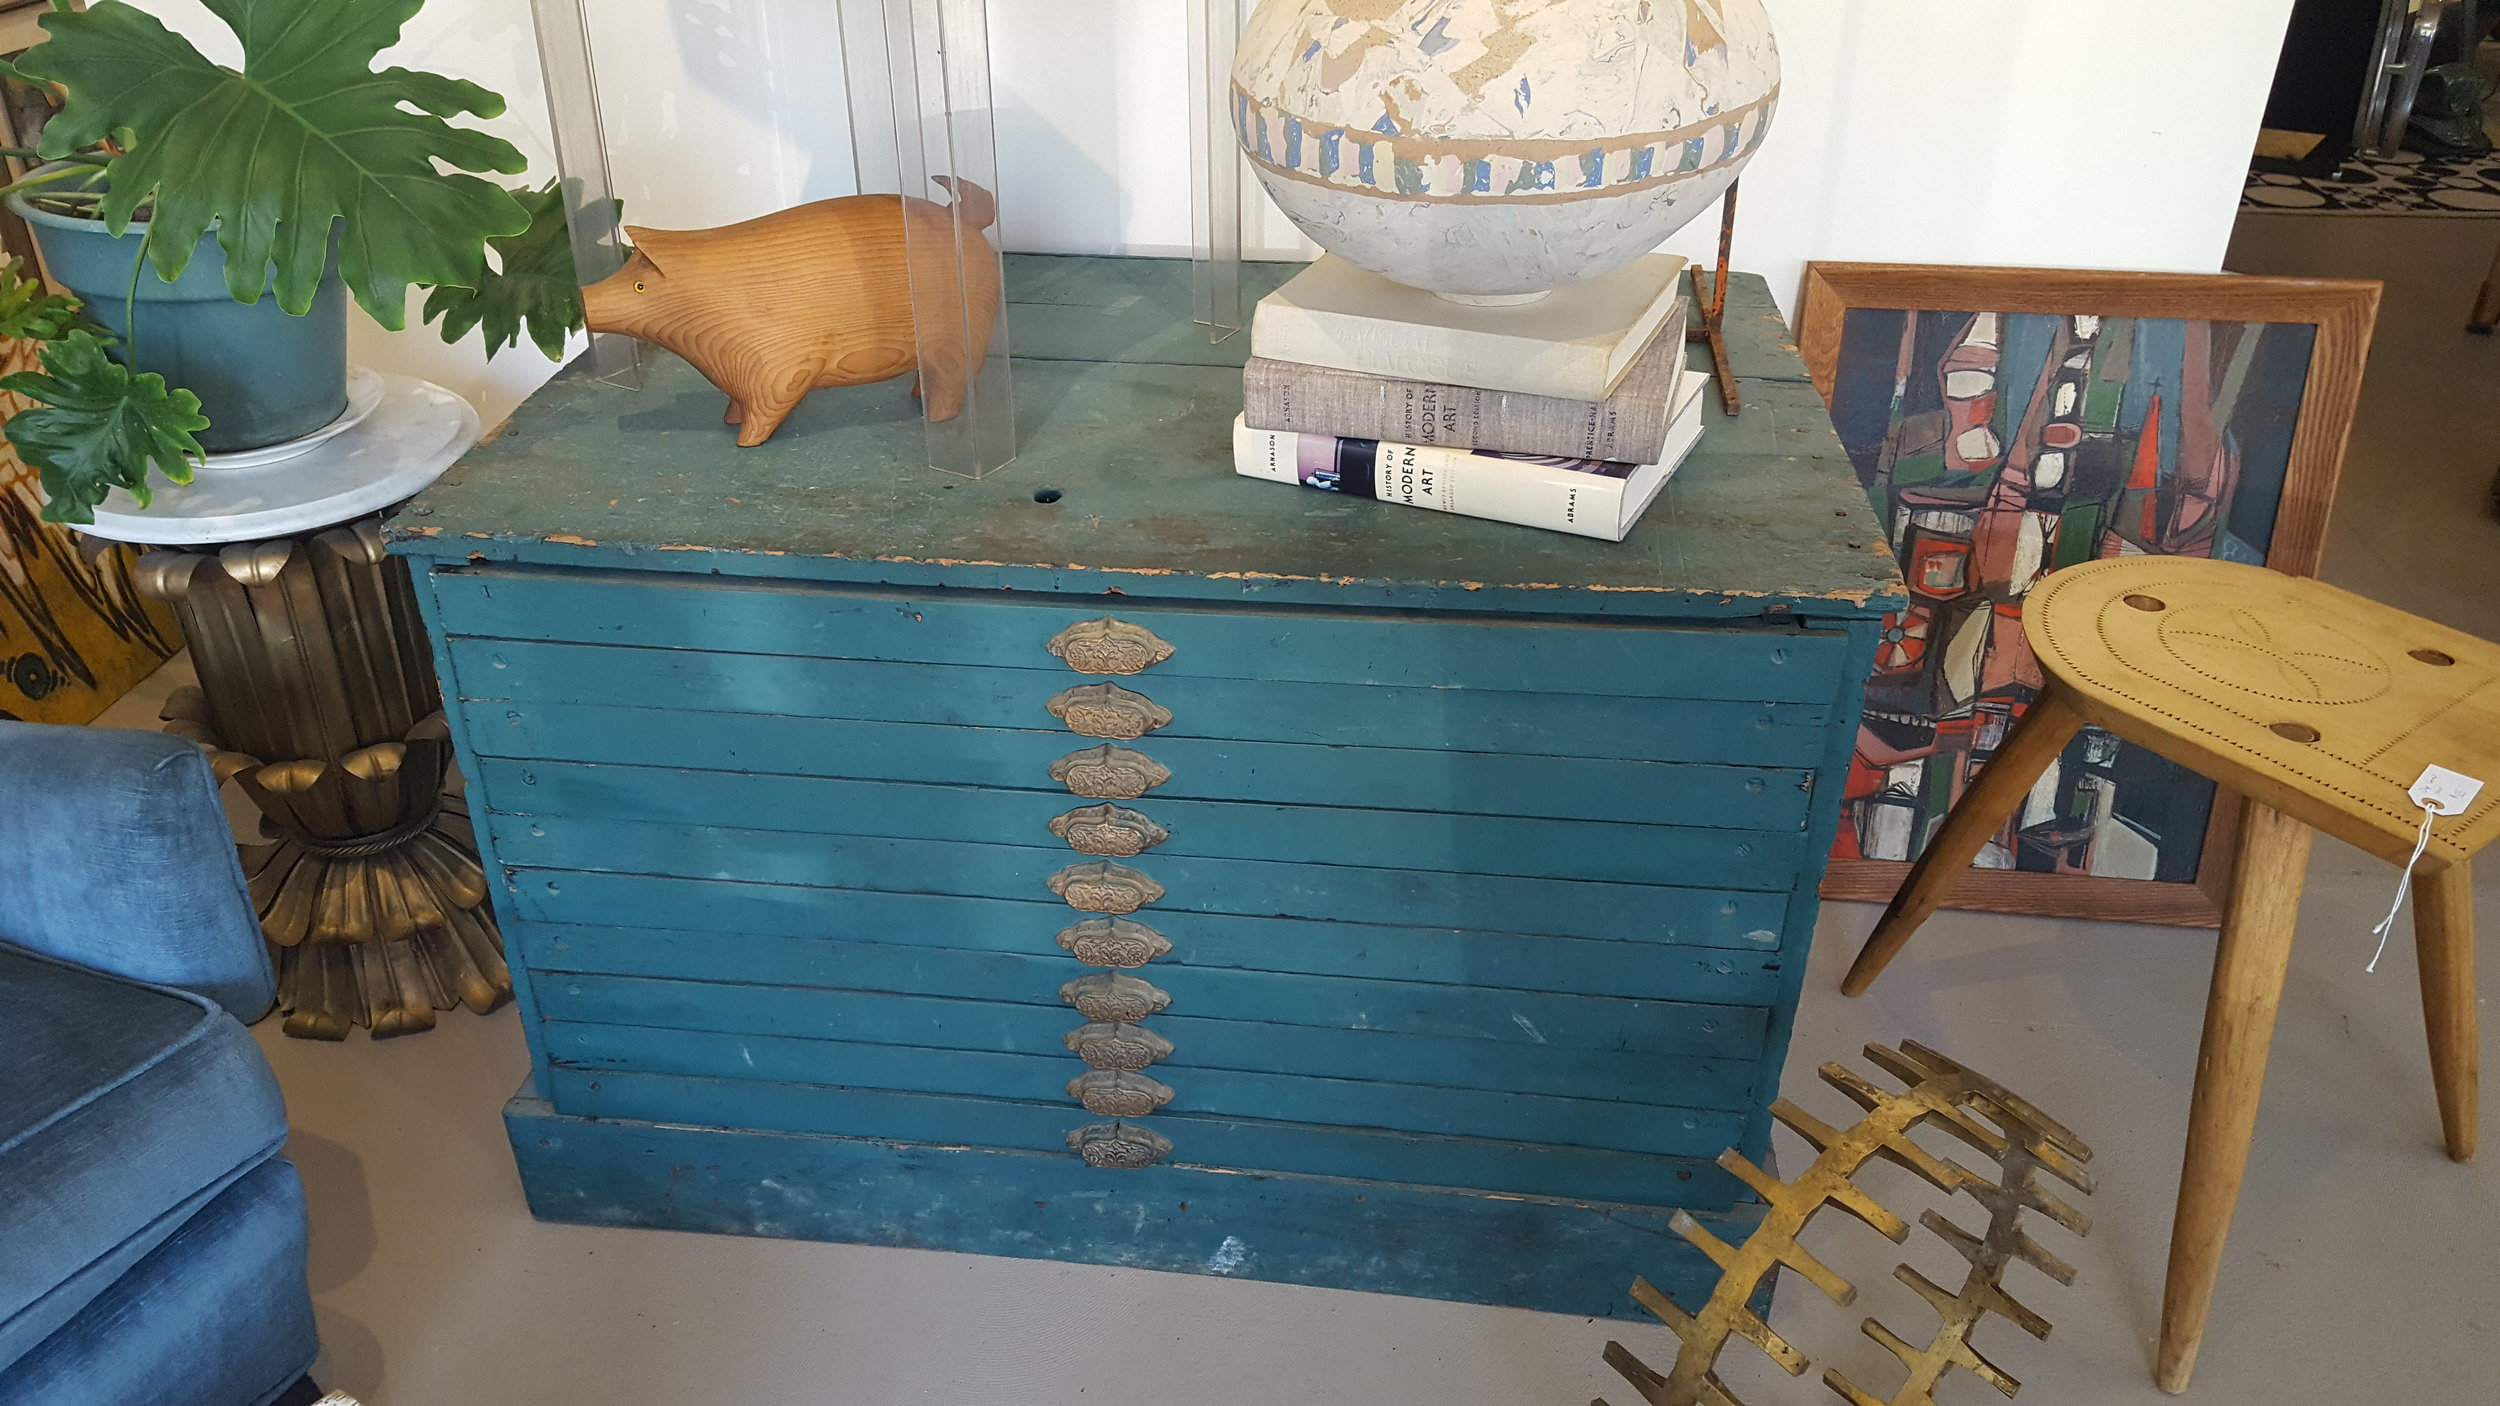 Antique Map or Document Case in Teal Paint